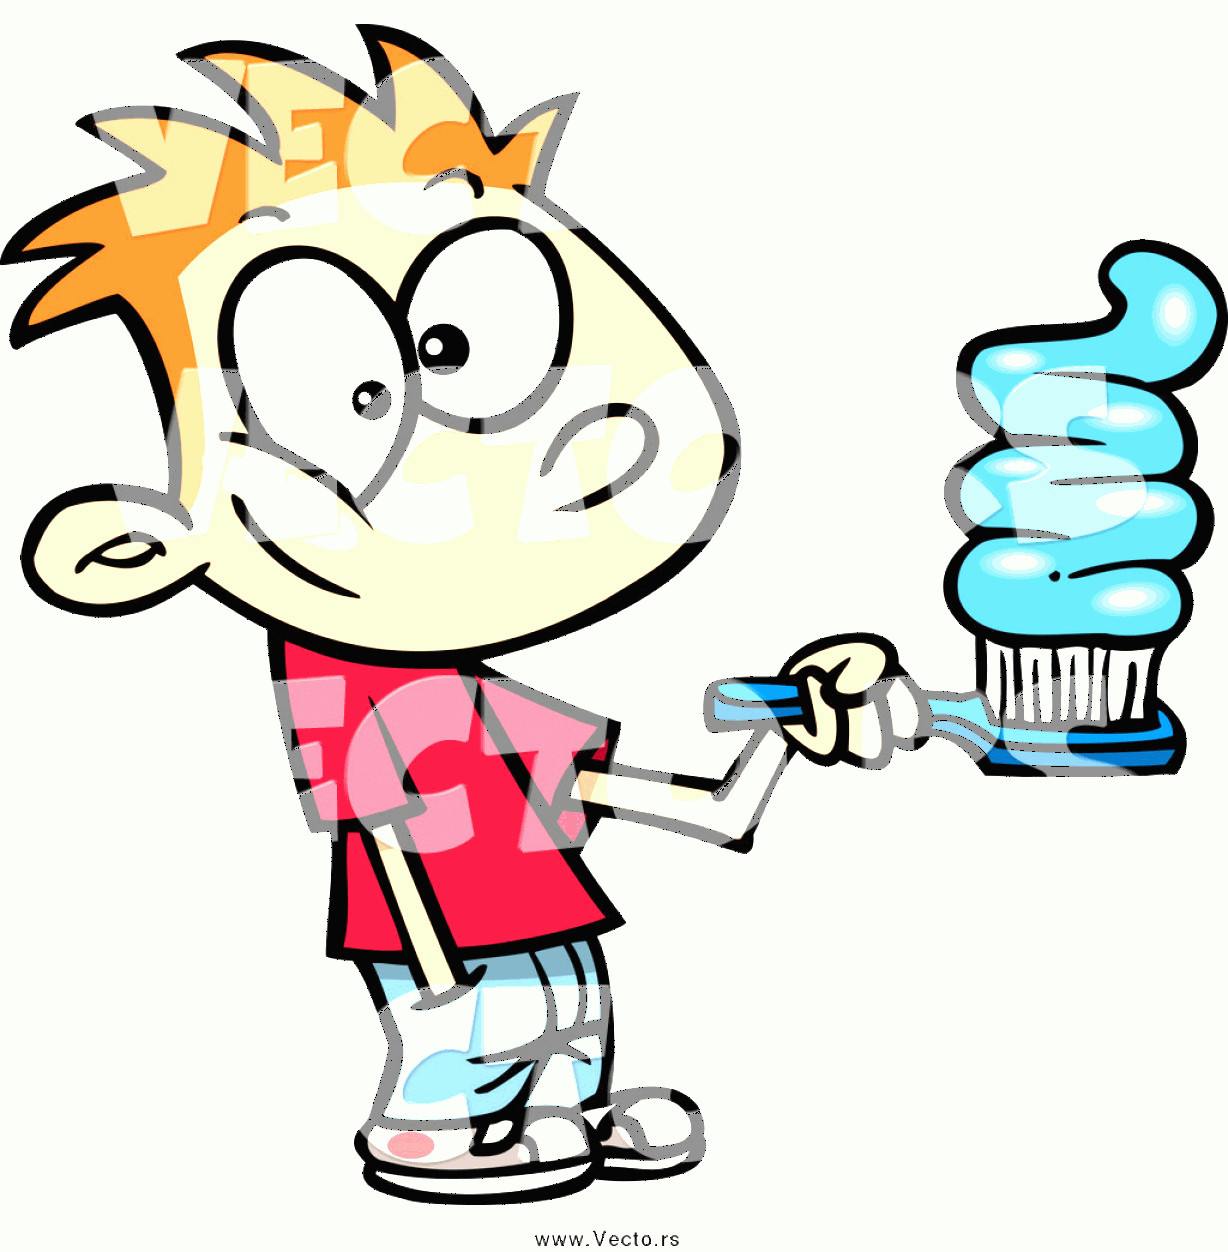 Toothpaste Cartoon Vector: Vector Of A Cartoon Red Haired Boy Going Overboard On Toothpaste By Toonaday